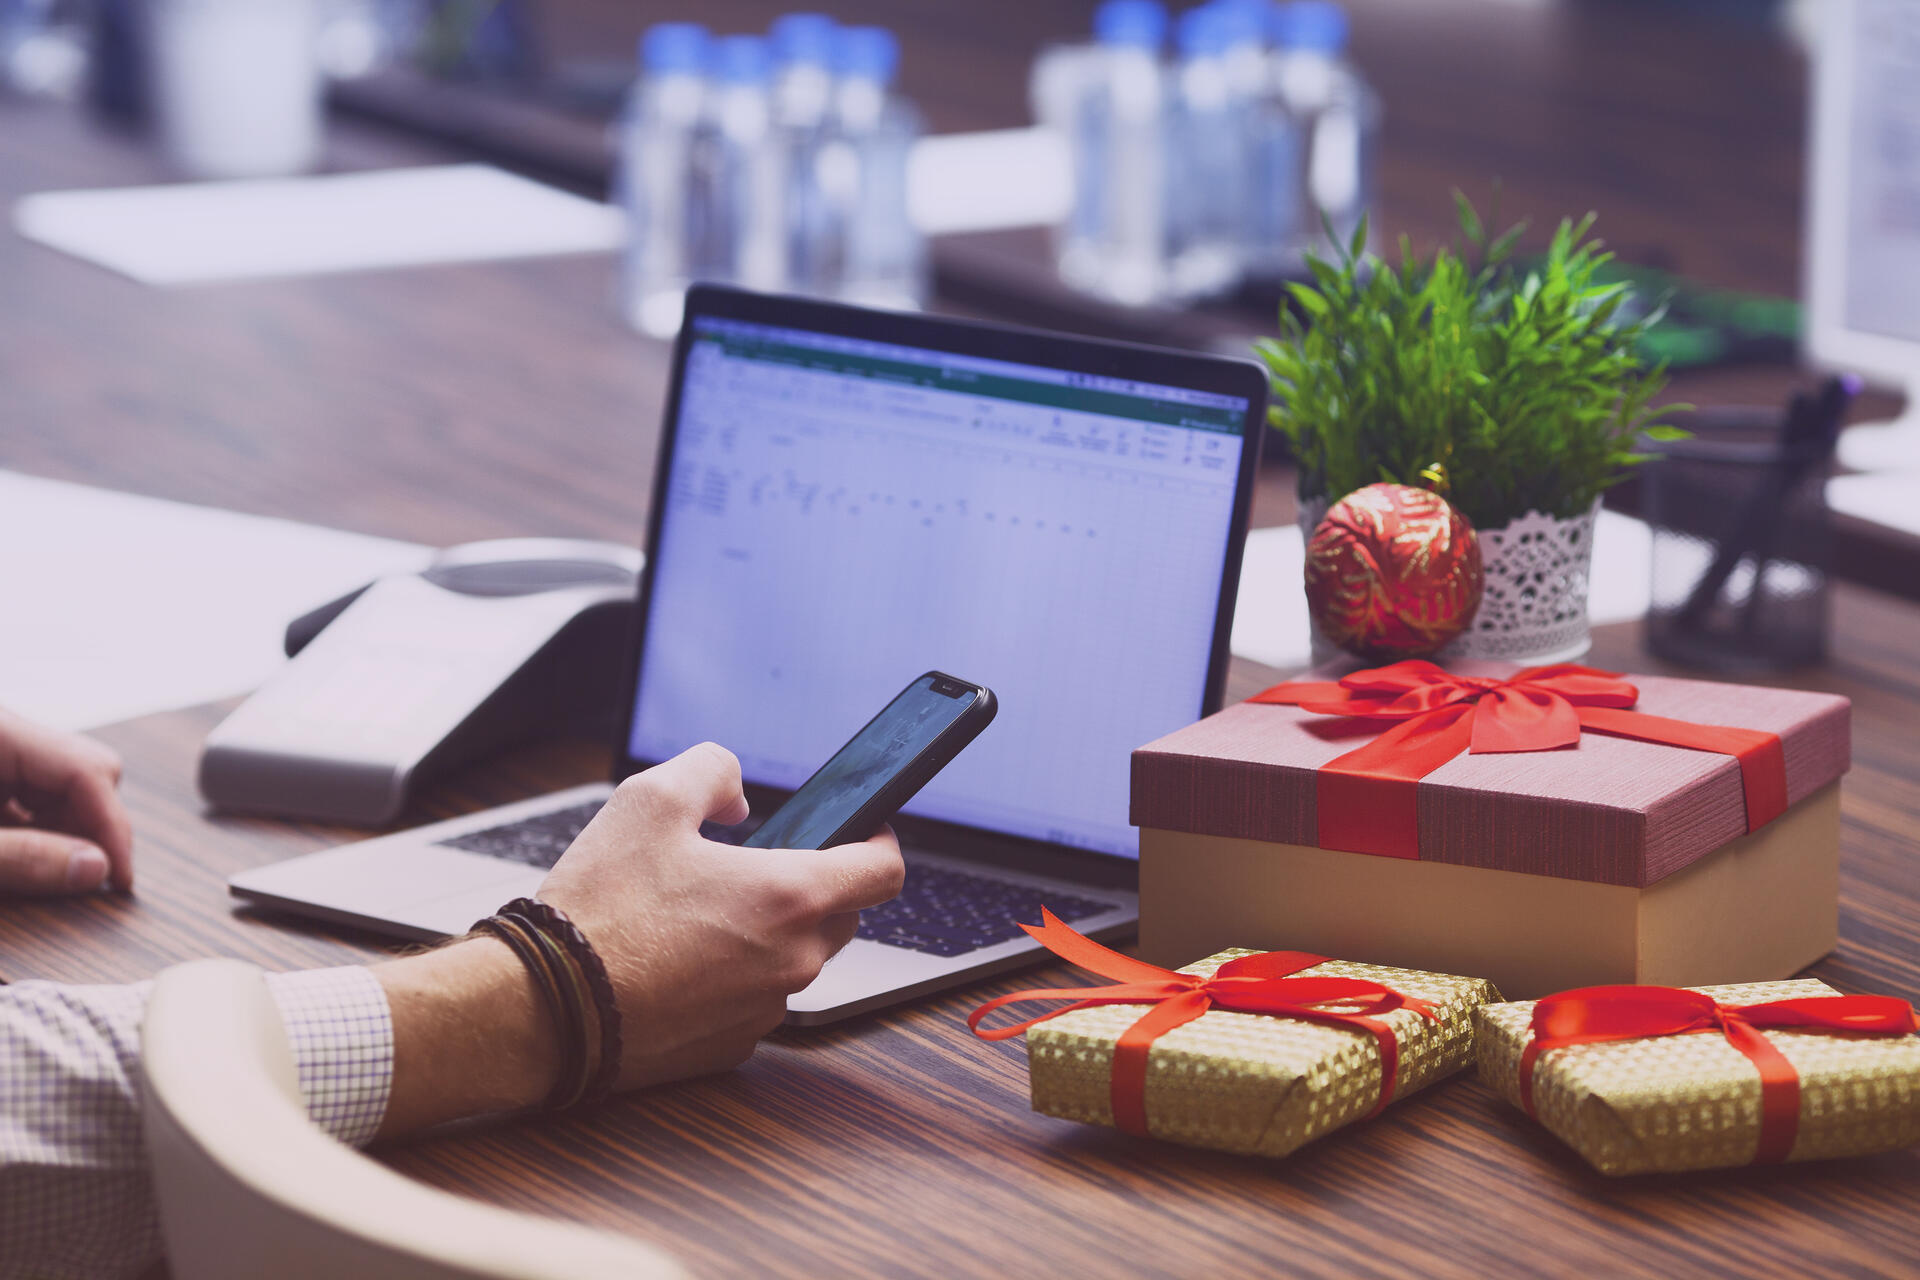 corporate gifts worth keeping